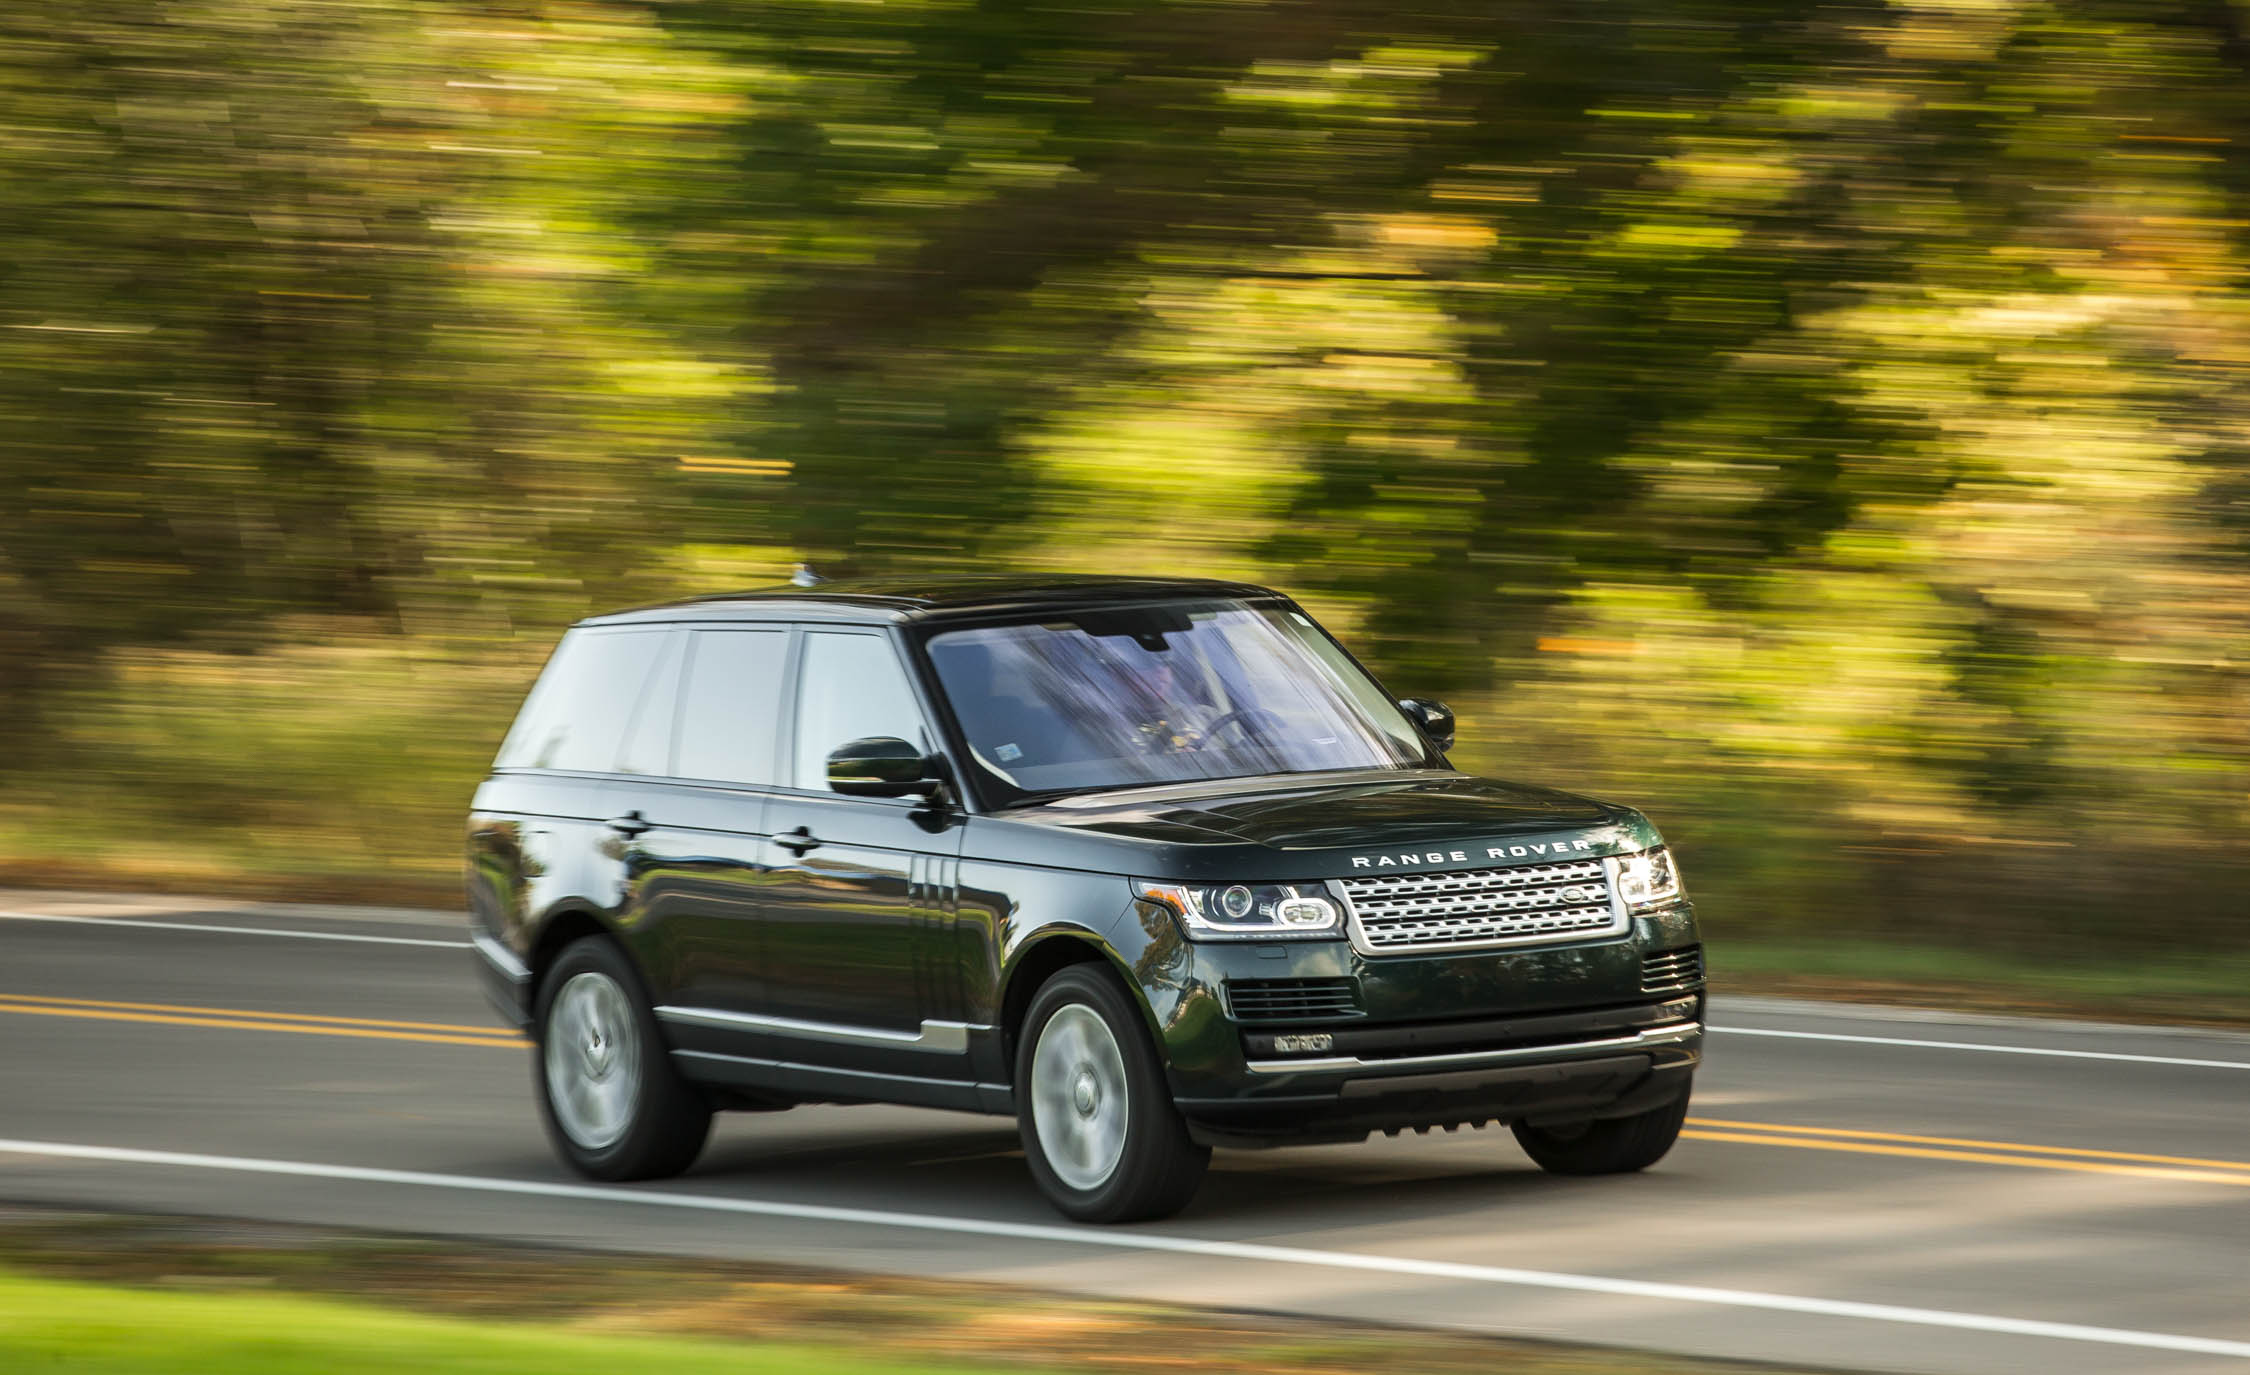 2016 Land Rover Range Rover HSE Td (View 5 of 8)